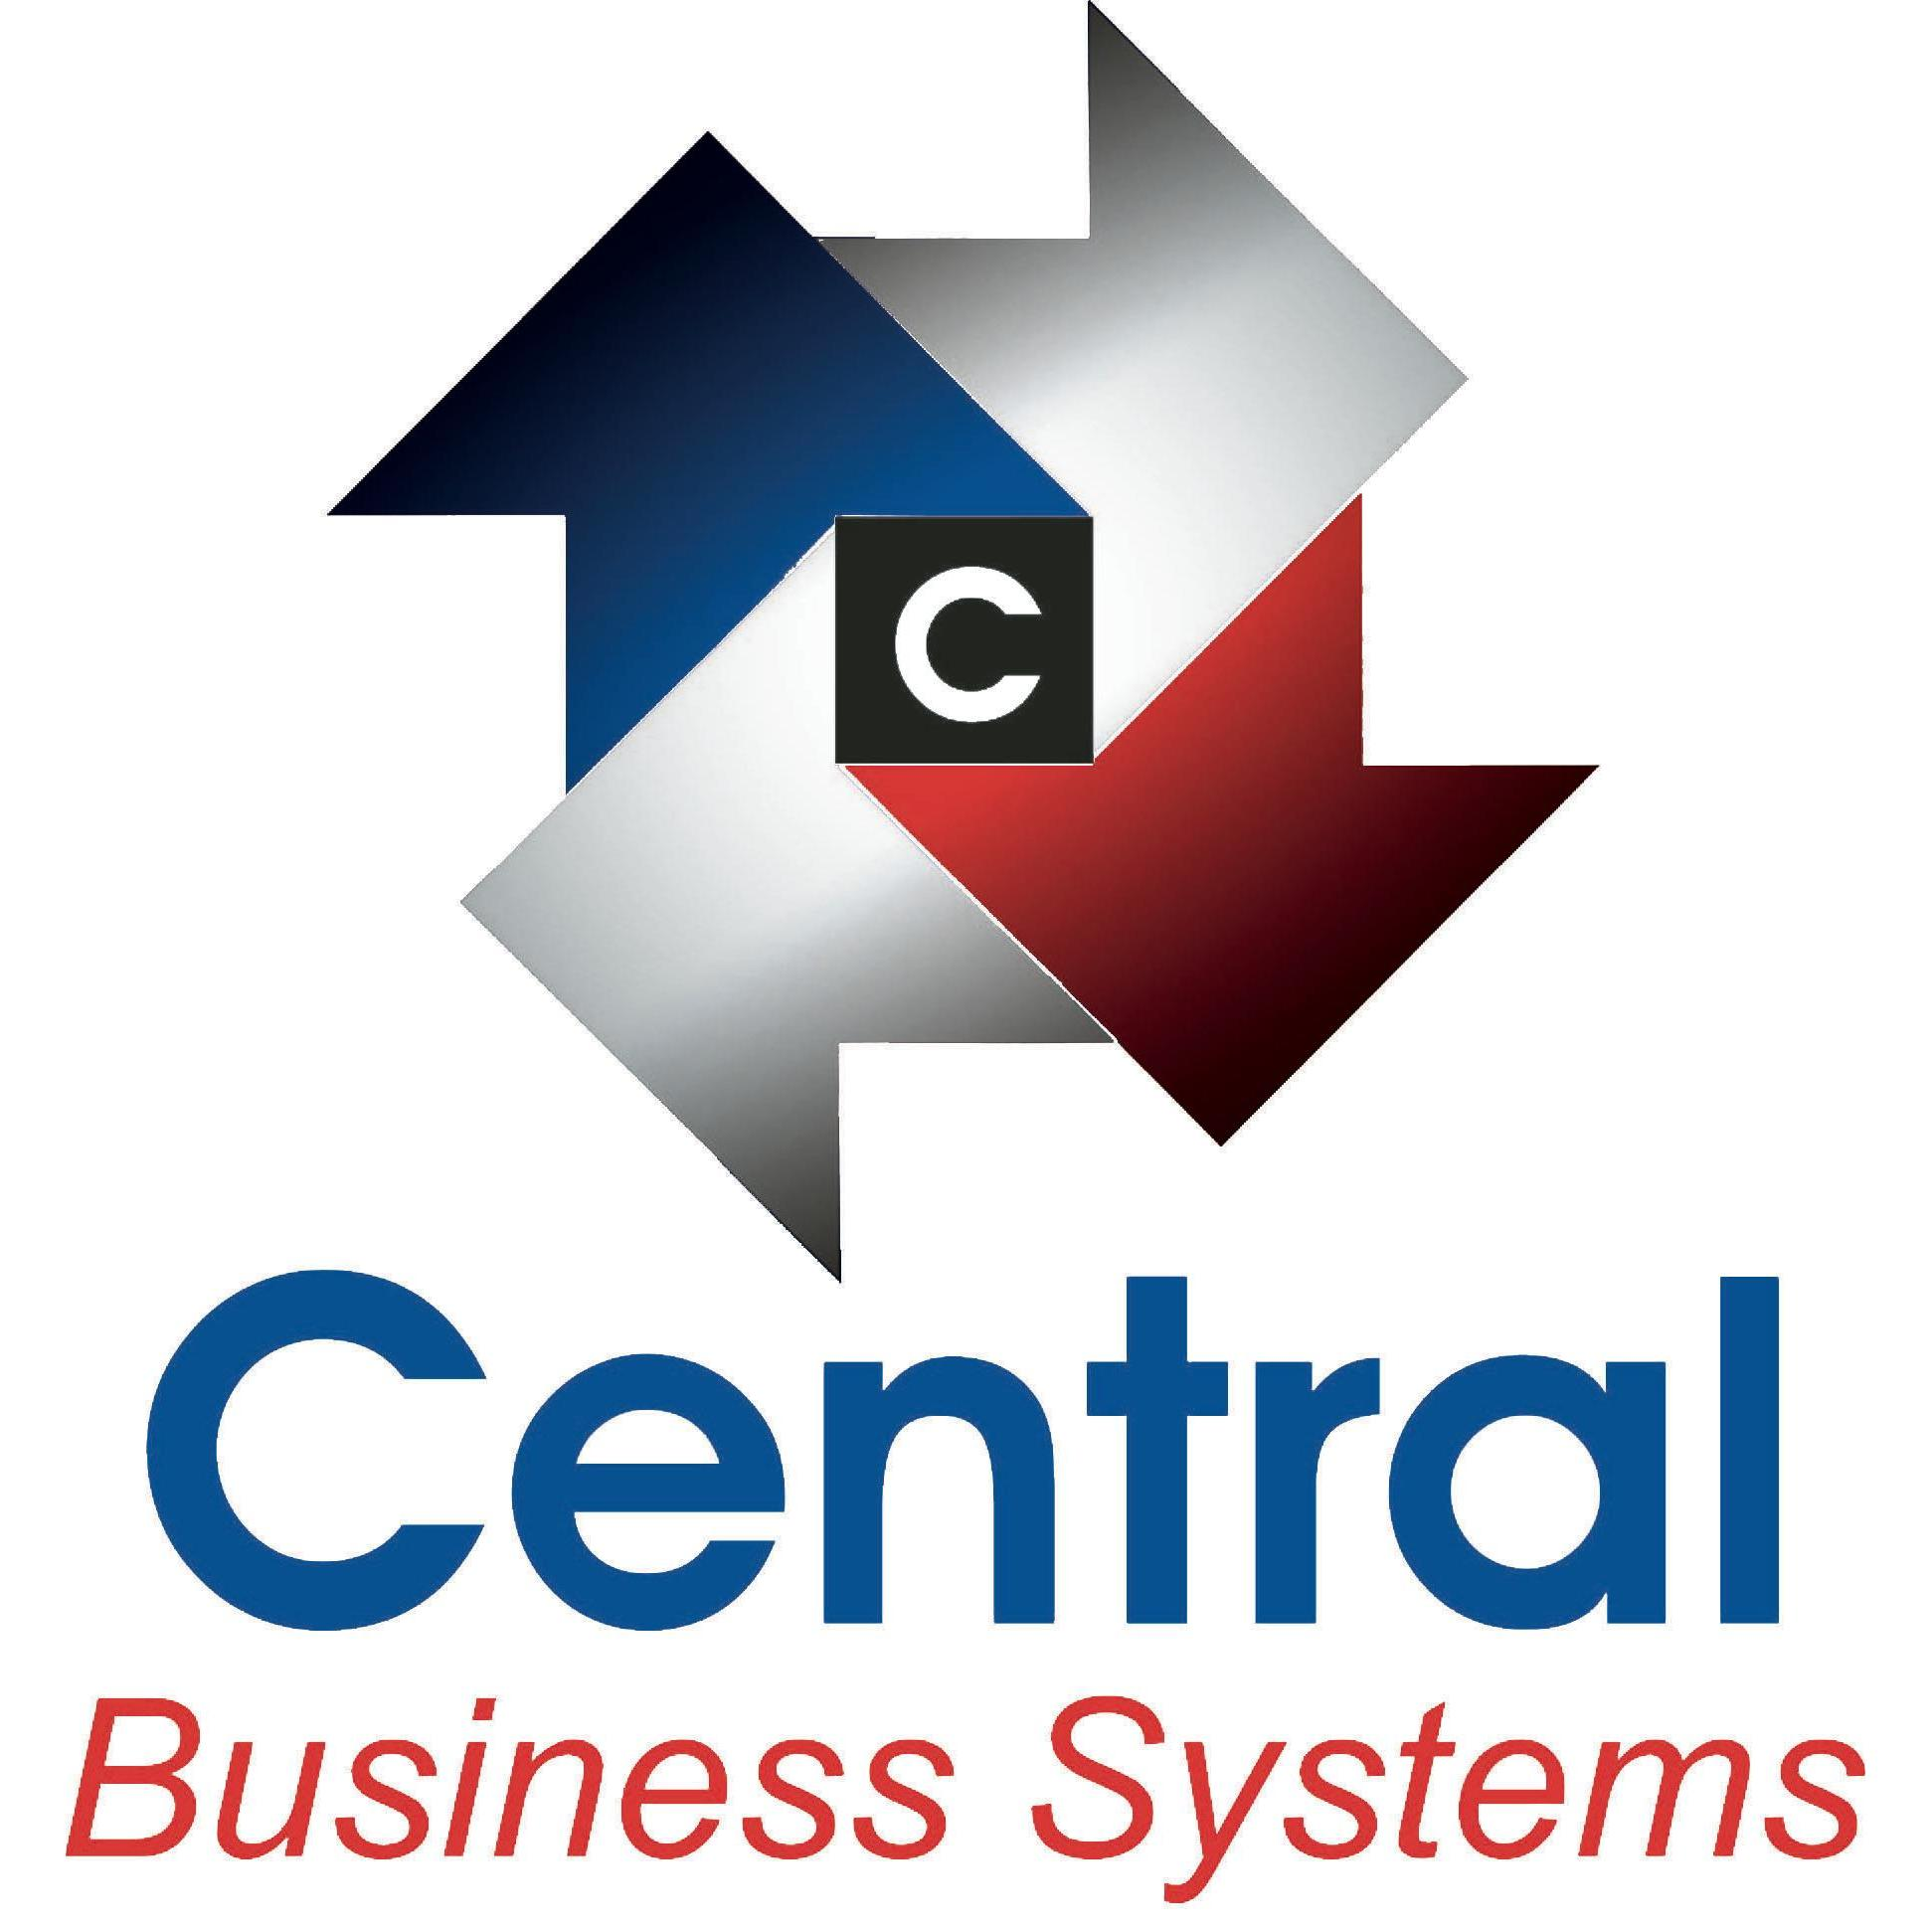 Central Digital Solutions Inc image 1